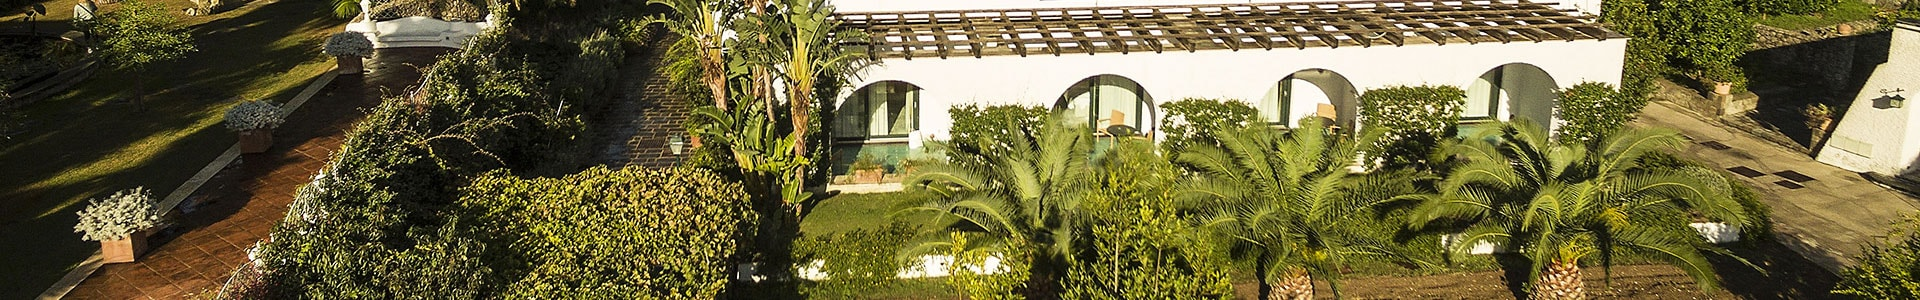 Hotel Garden e Villas Resort in Forio